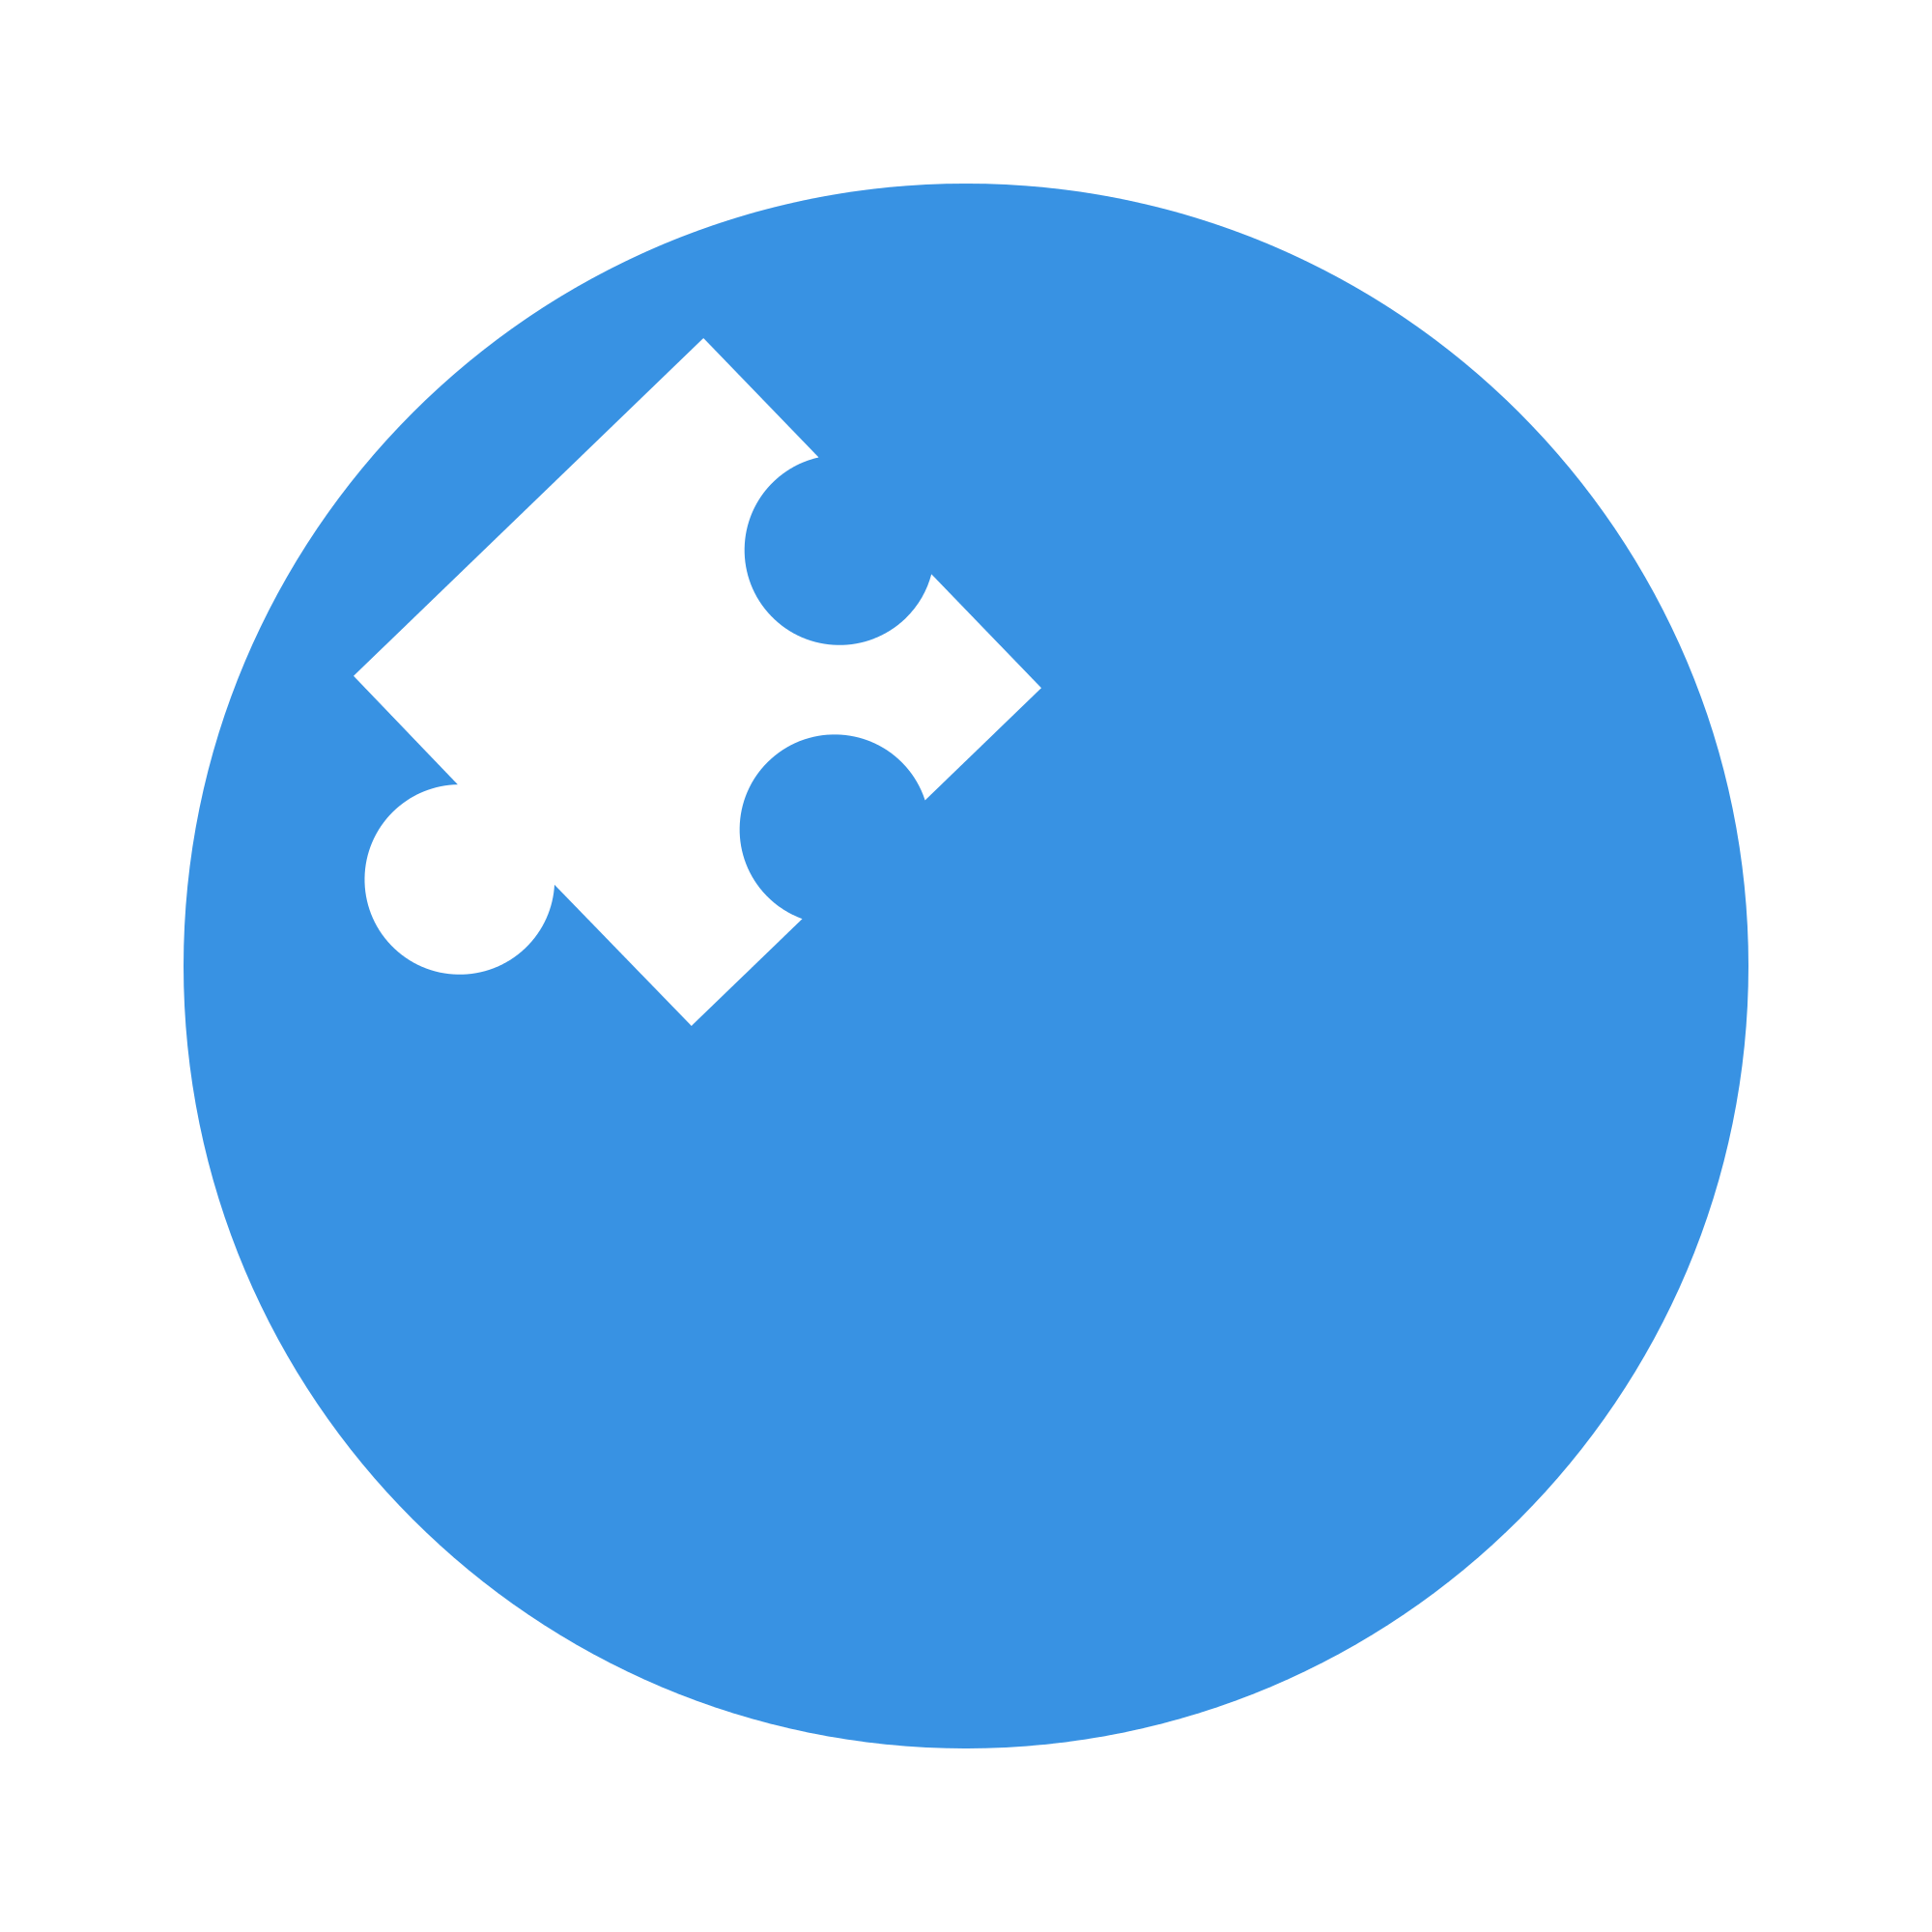 Puzzle transparent logo. File simple svg wikimedia